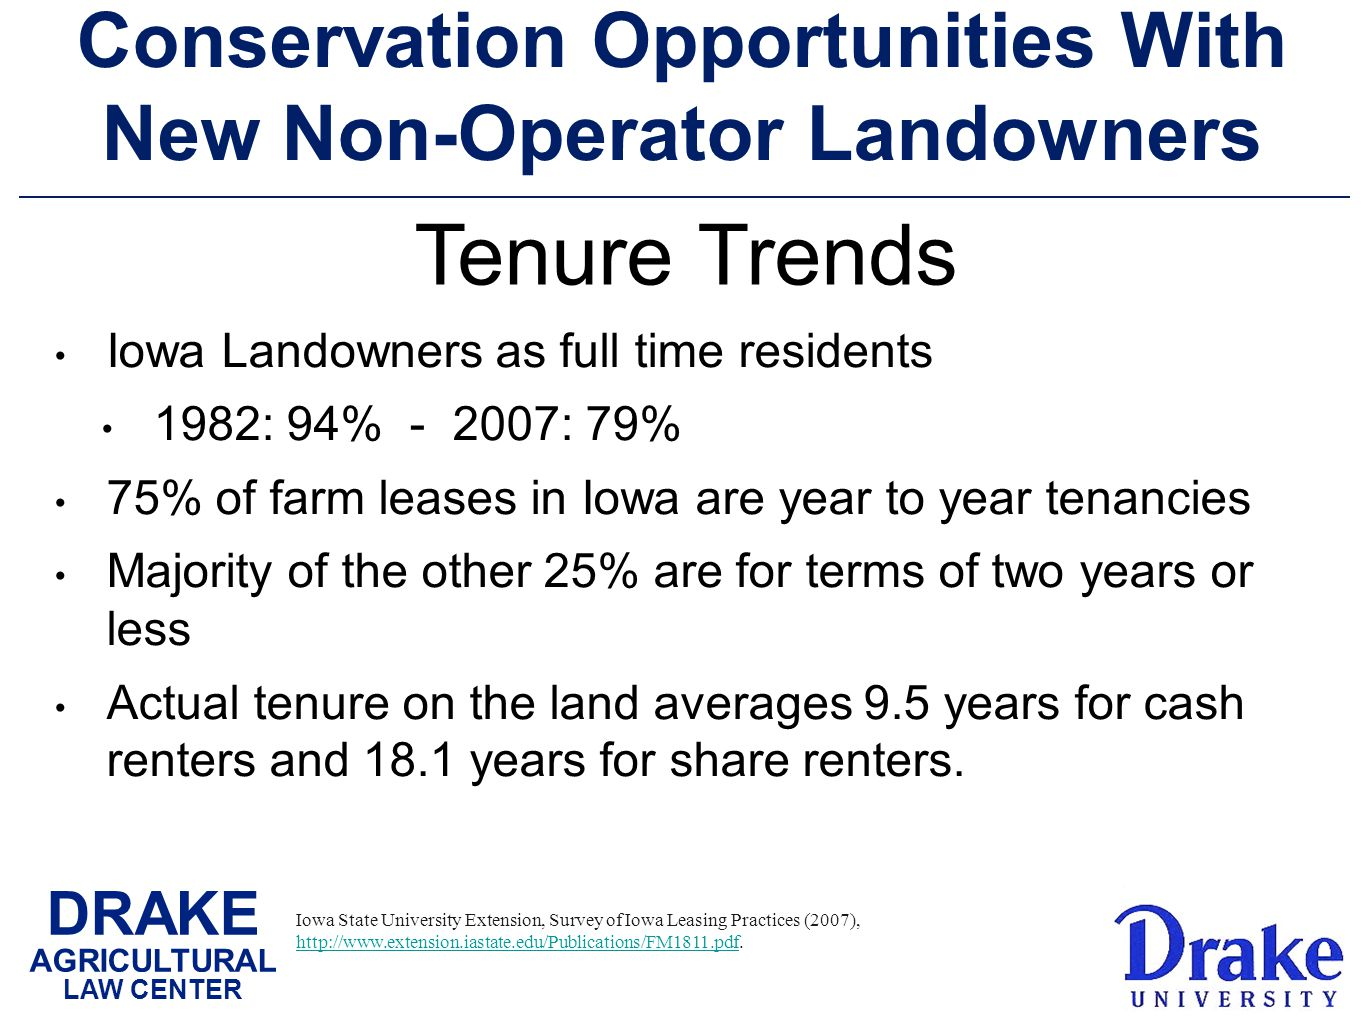 DRAKE AGRICULTURAL LAW CENTER Conservation Opportunities With New Non-Operator Landowners Iowa Landowners as full time residents 1982: 94% - 2007: 79% 75% of farm leases in Iowa are year to year tenancies Majority of the other 25% are for terms of two years or less Actual tenure on the land averages 9.5 years for cash renters and 18.1 years for share renters.